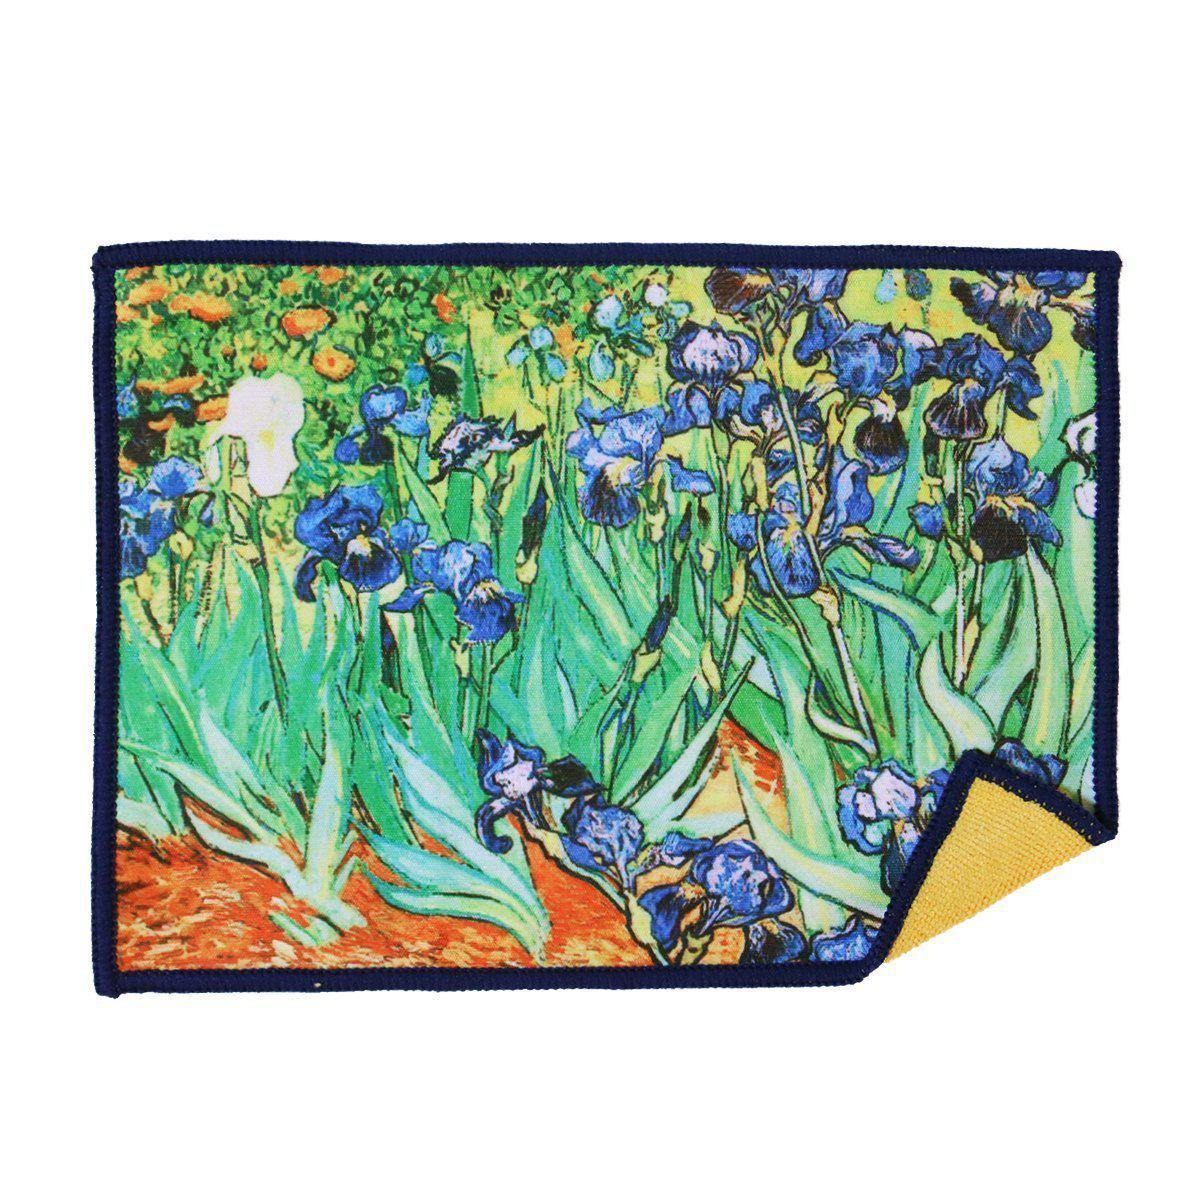 screen cleaning cloth Irises by Vincent van Gogh clean touchscreen surfaces